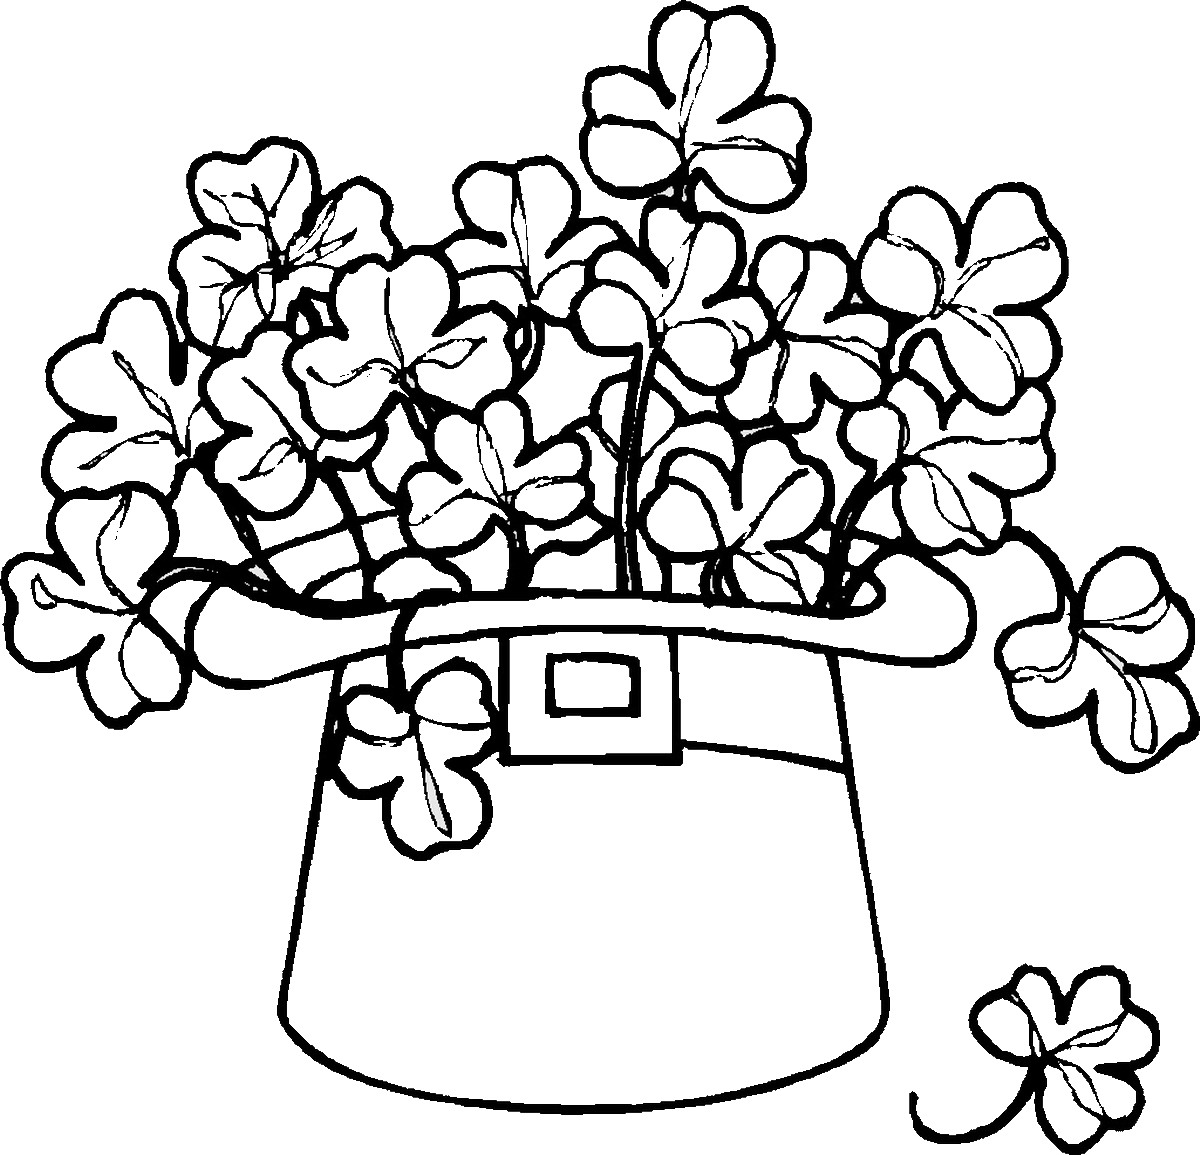 Free St. Patrick\'s Day Coloring Pages - Happiness is Homemade